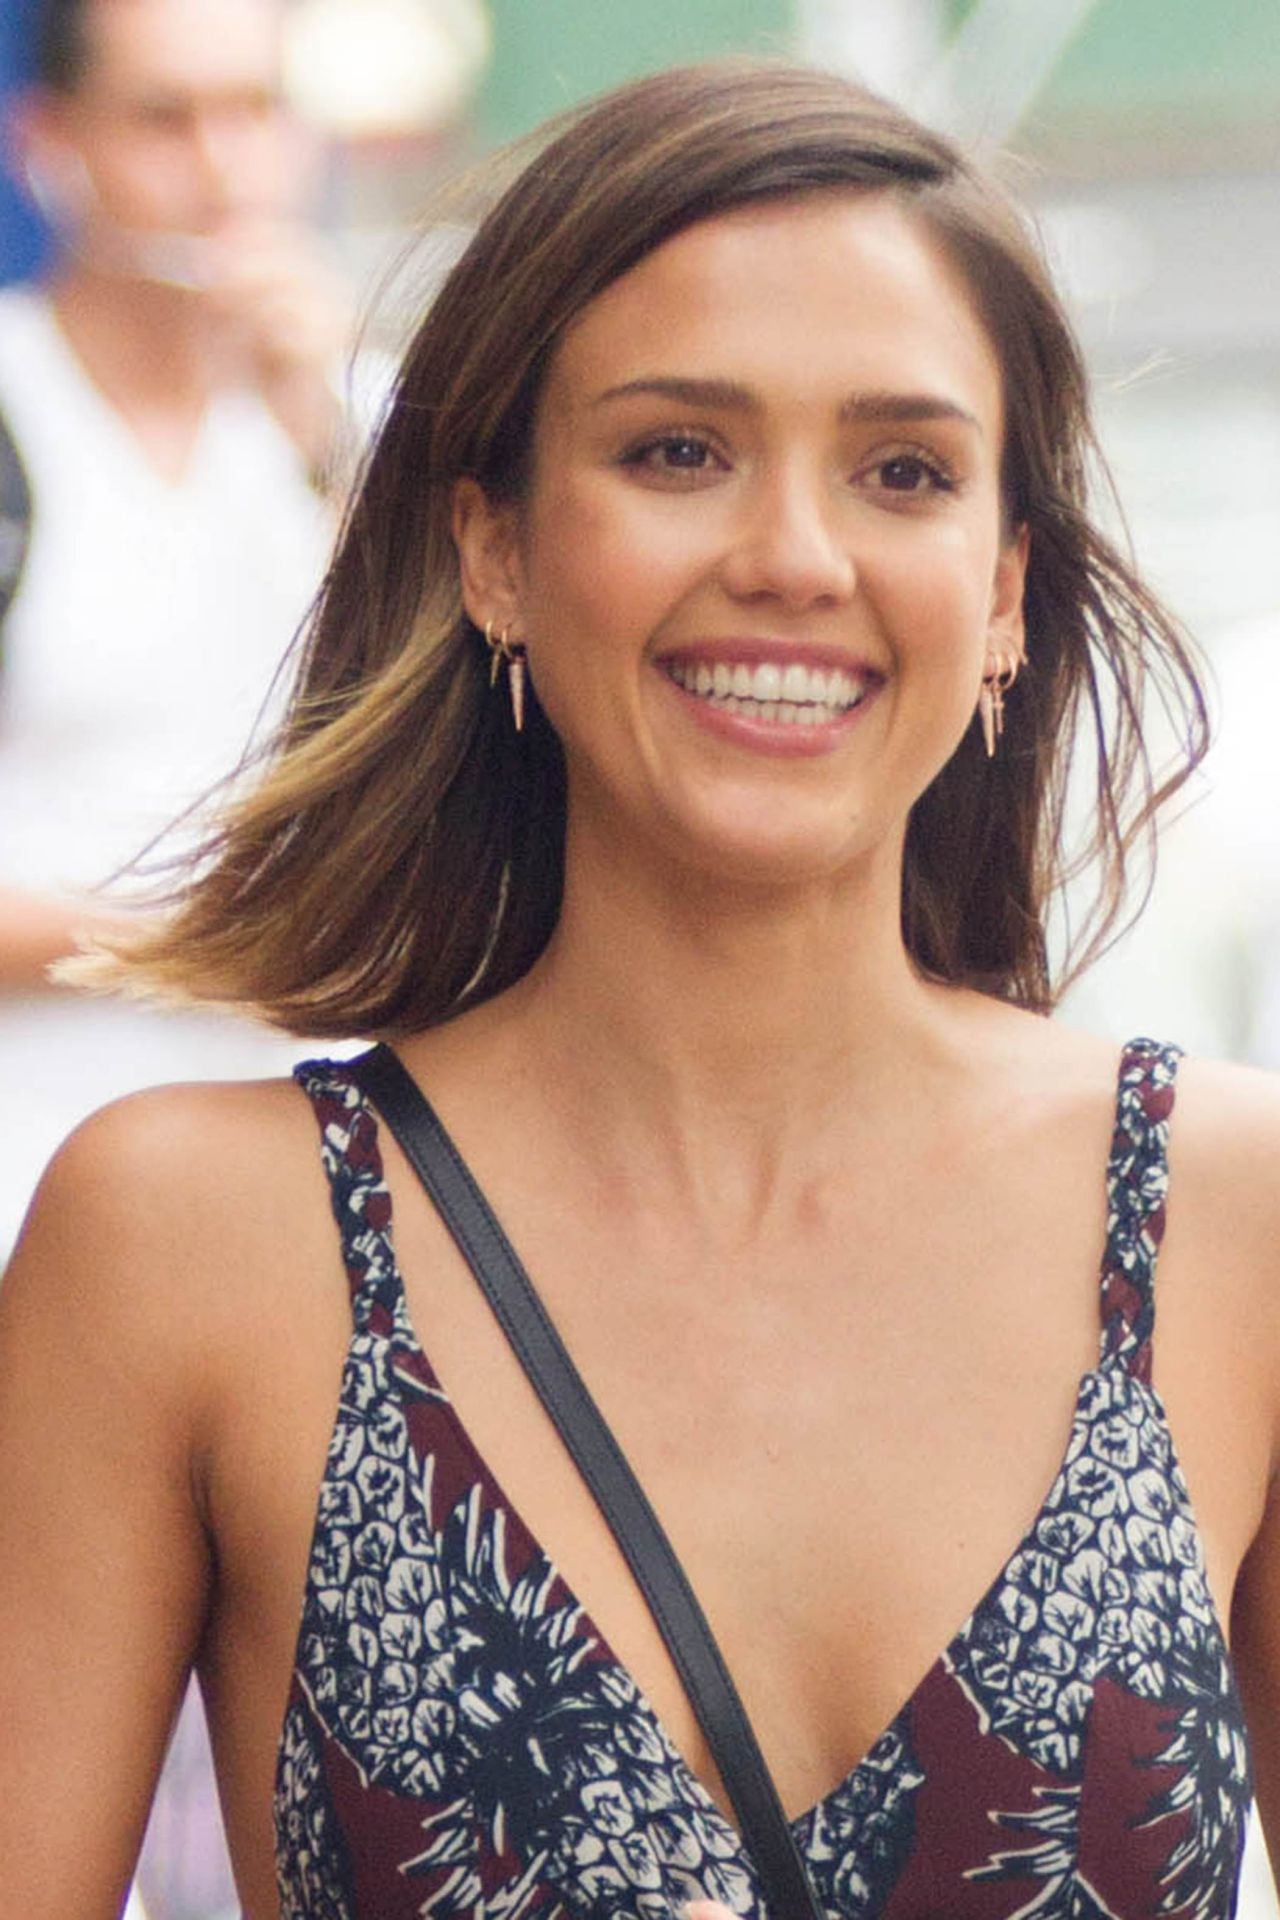 jessica alba instagramjessica alba 2017, jessica alba 2016, jessica alba style, jessica alba films, jessica alba hair, jessica alba movies, jessica alba street style, jessica alba wiki, jessica alba instagram, jessica alba net worth, jessica alba 2007, jessica alba make up, jessica alba site, jessica alba filmography, jessica alba wikipedia, jessica alba style 2017, jessica alba kino, jessica alba наркоз, jessica alba 2015, jessica alba imdb